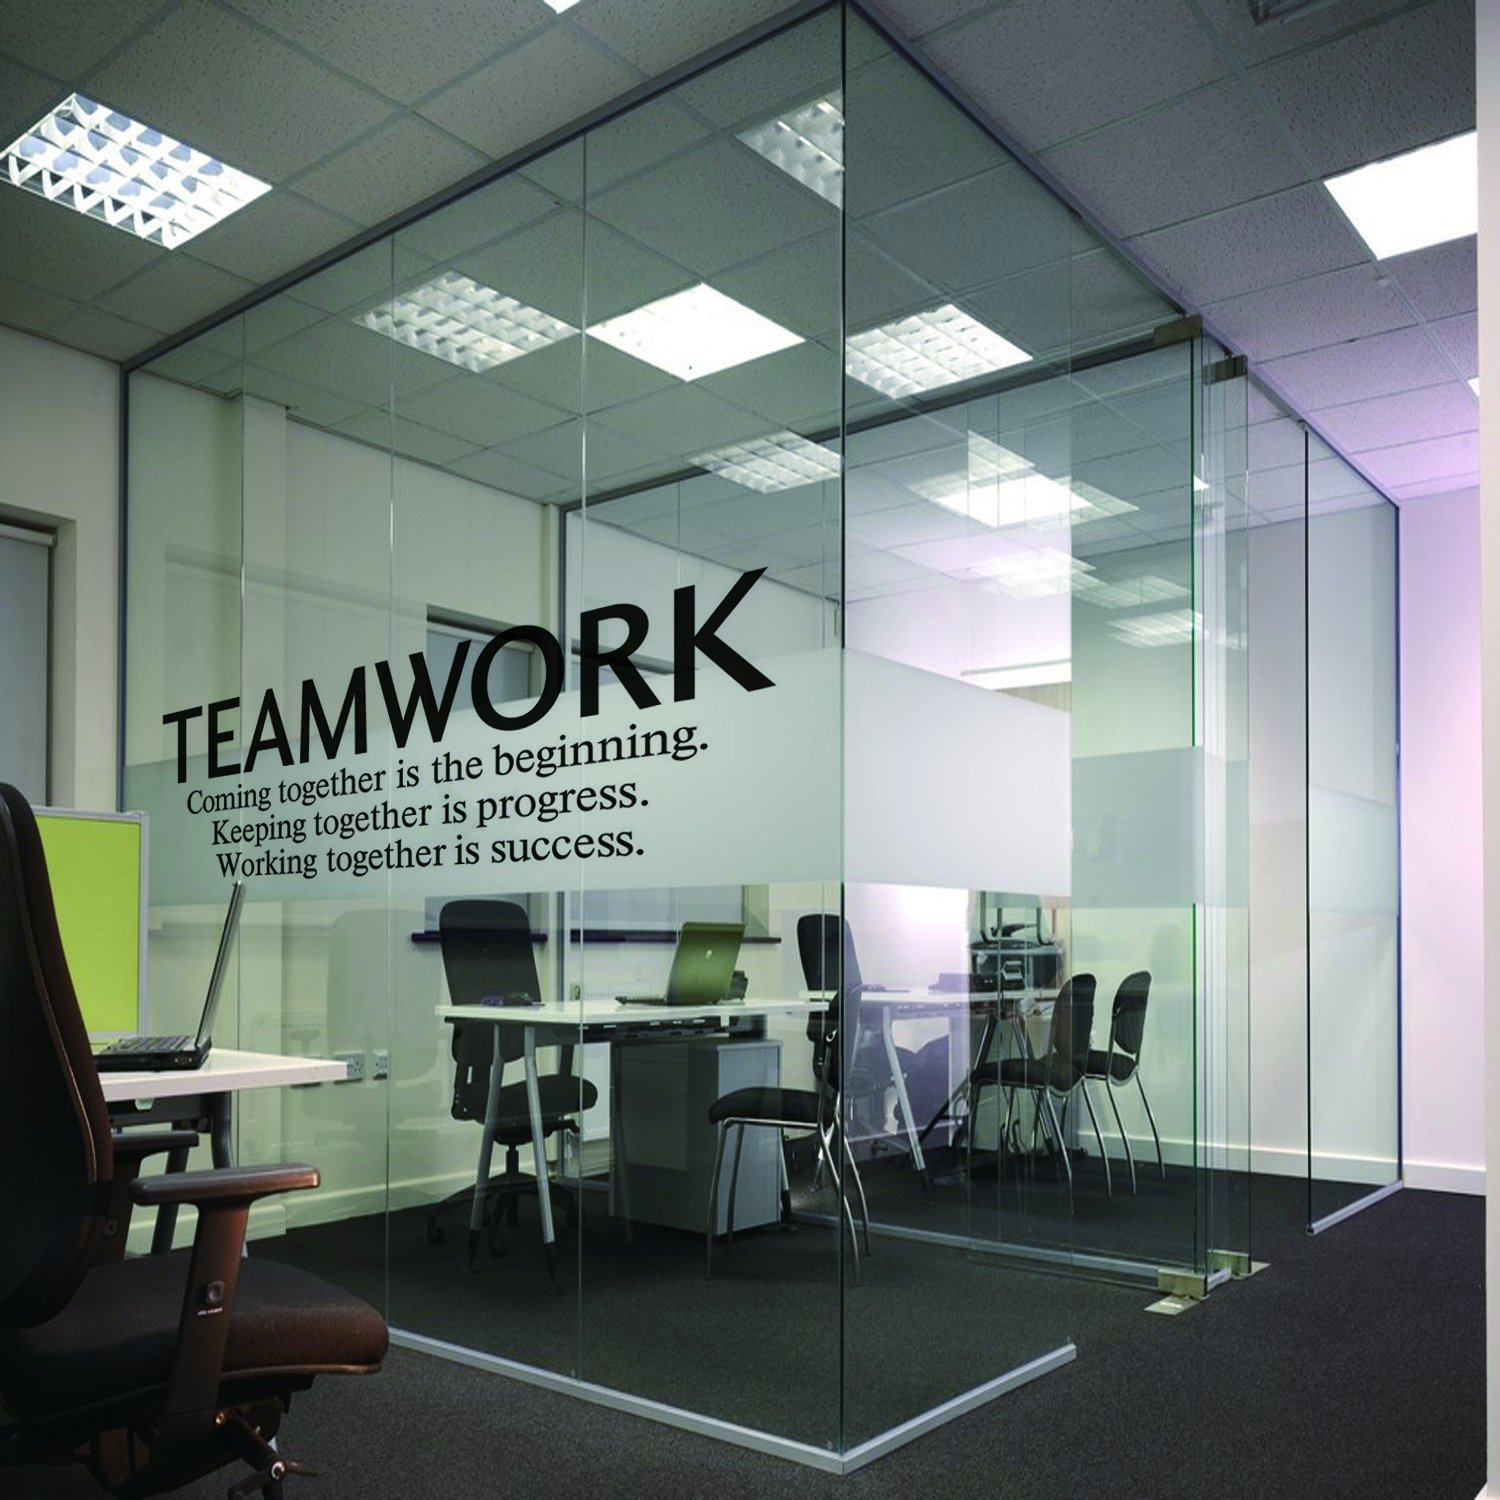 N sunforest quotes wall decal teamwork definition office wall decor inspirational lettering sayings wall art